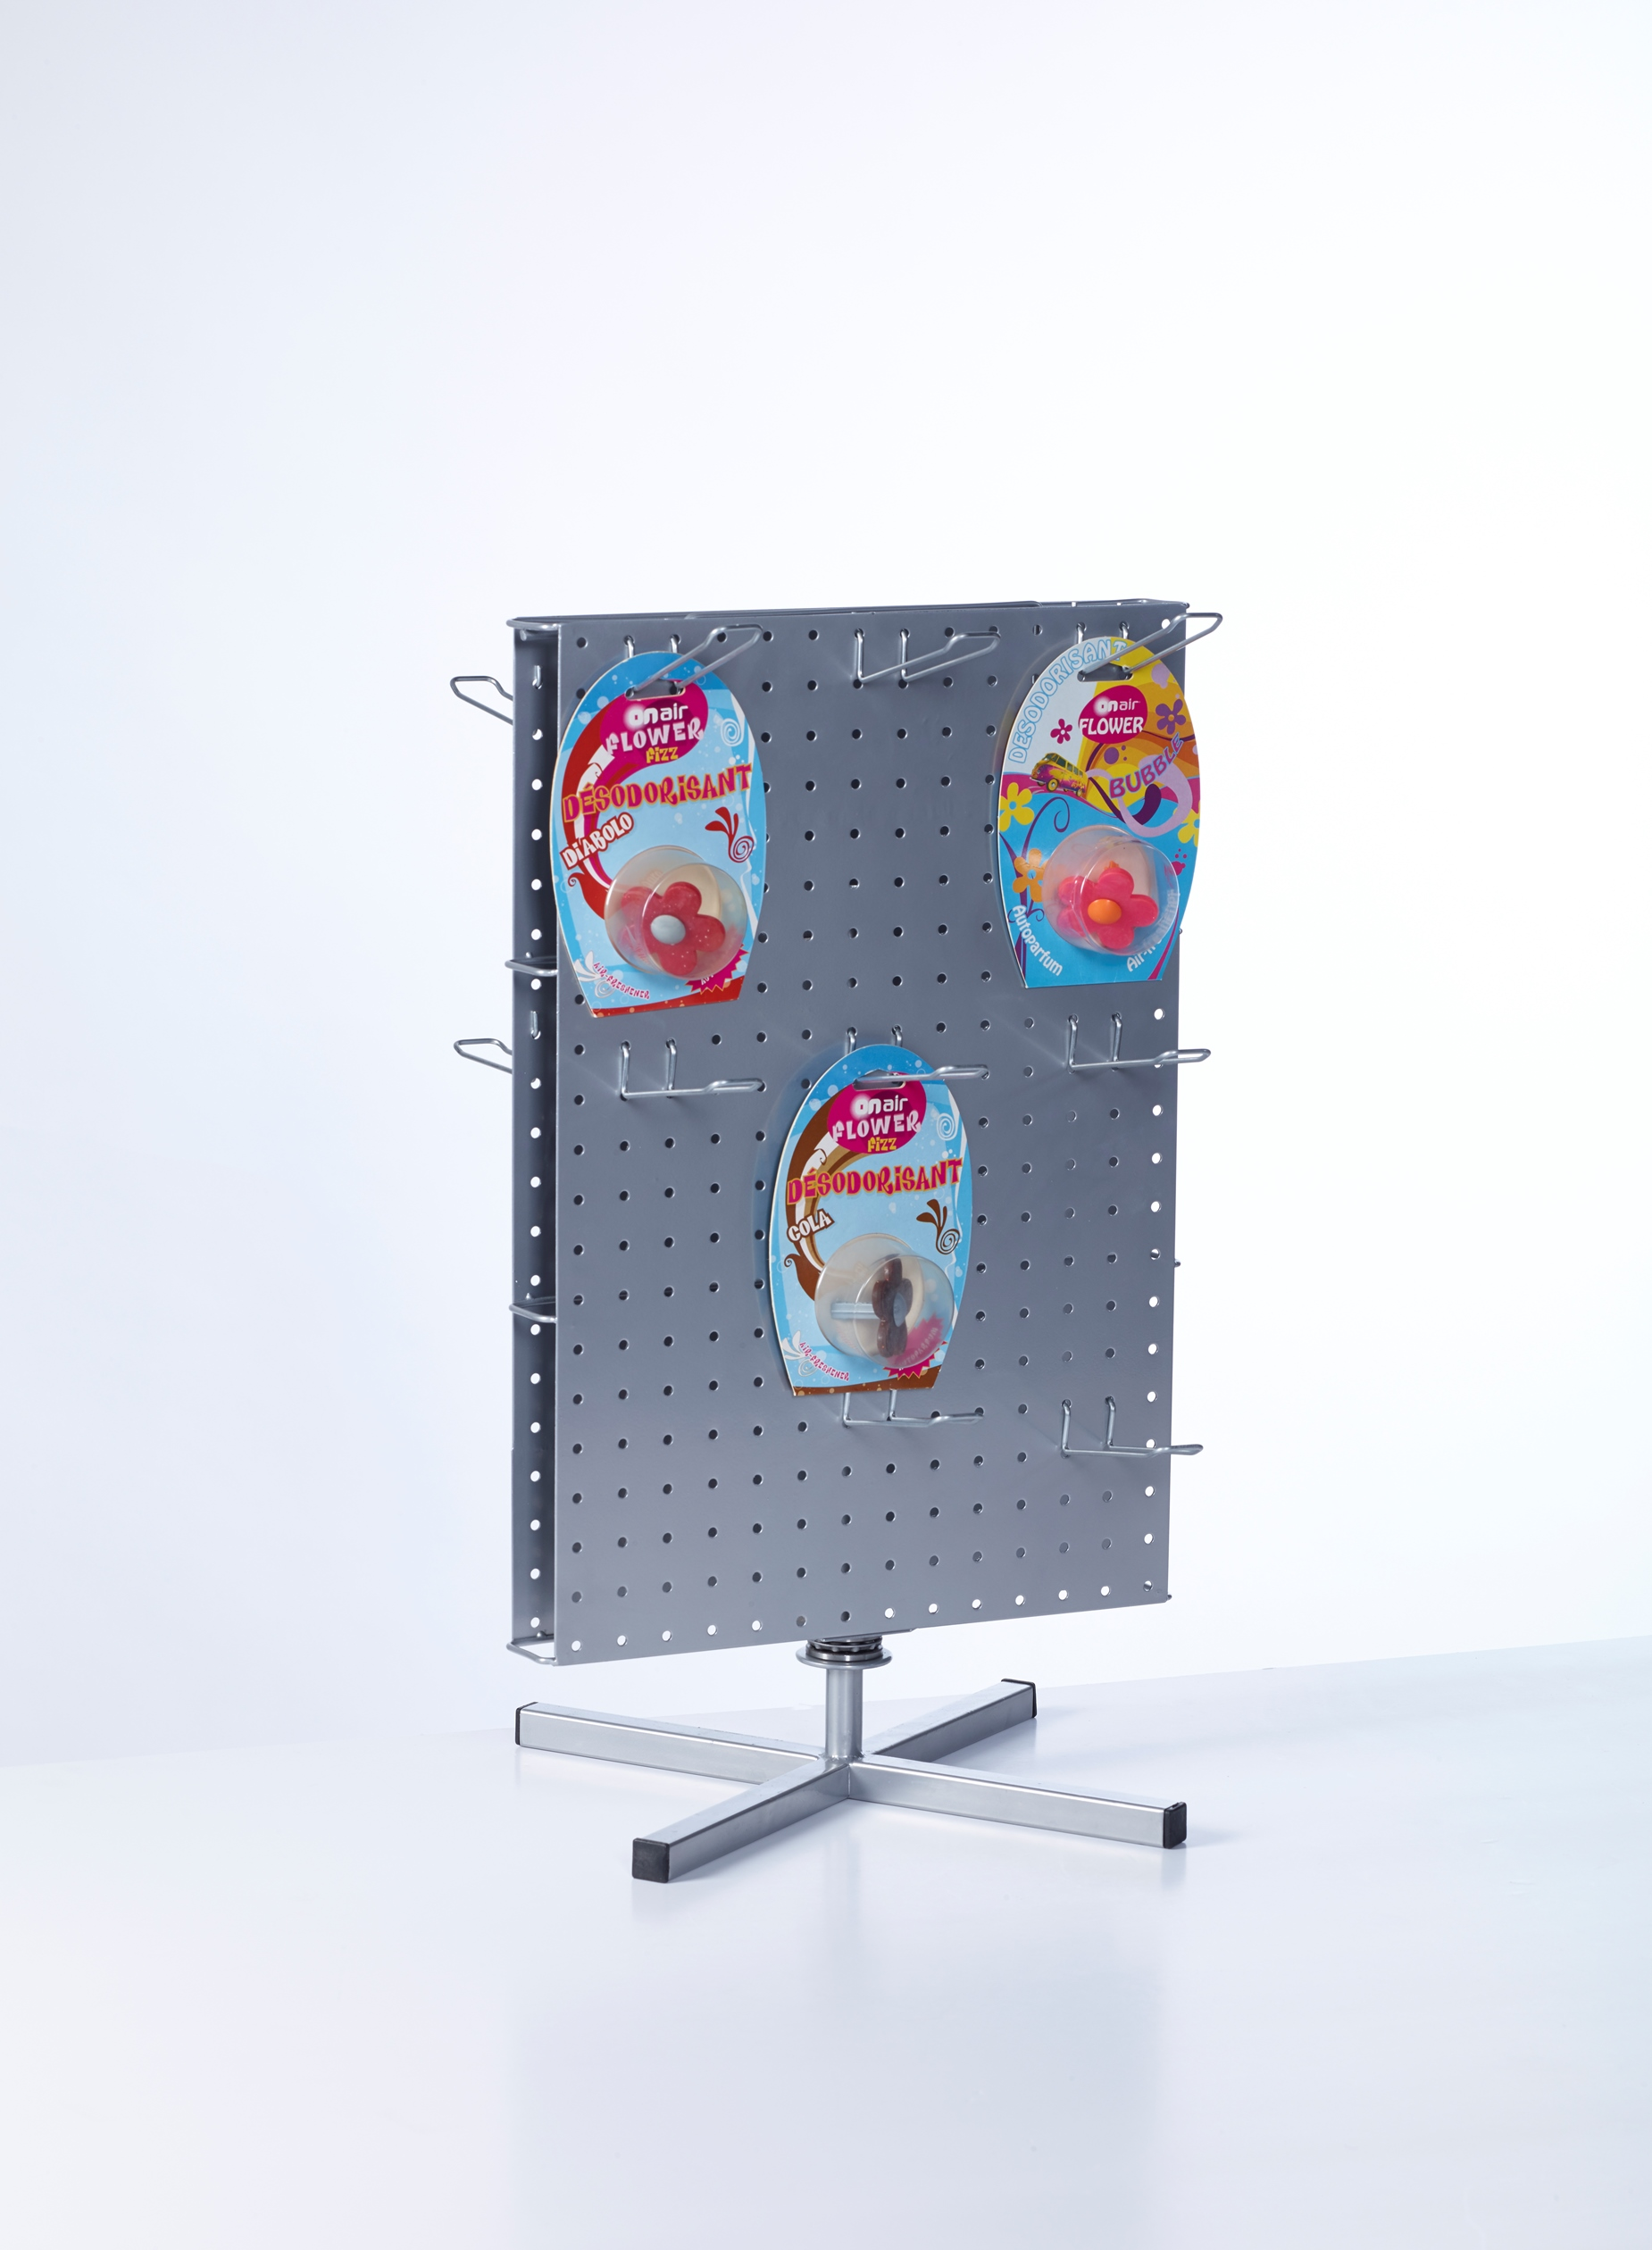 blisterdisplay - buyck displays - BU960